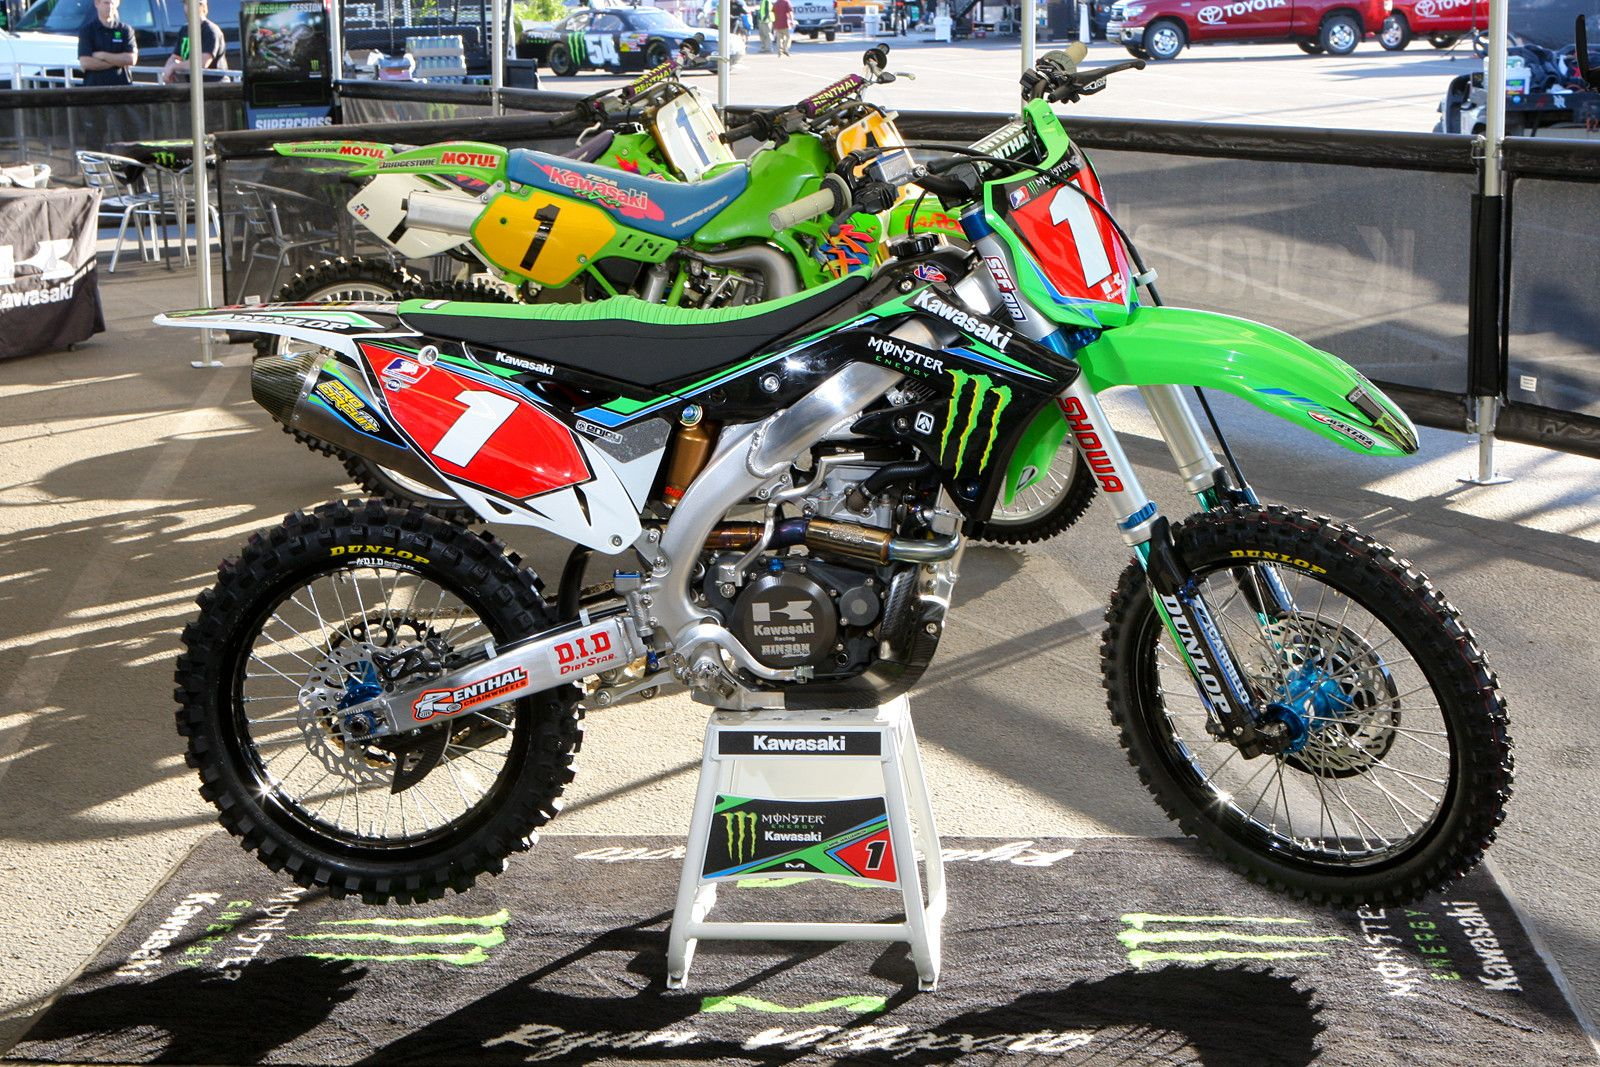 Beau Kawasaki KX 450 Team Monster Energy Kawasaki Ryan Villopoto Supercross 2013